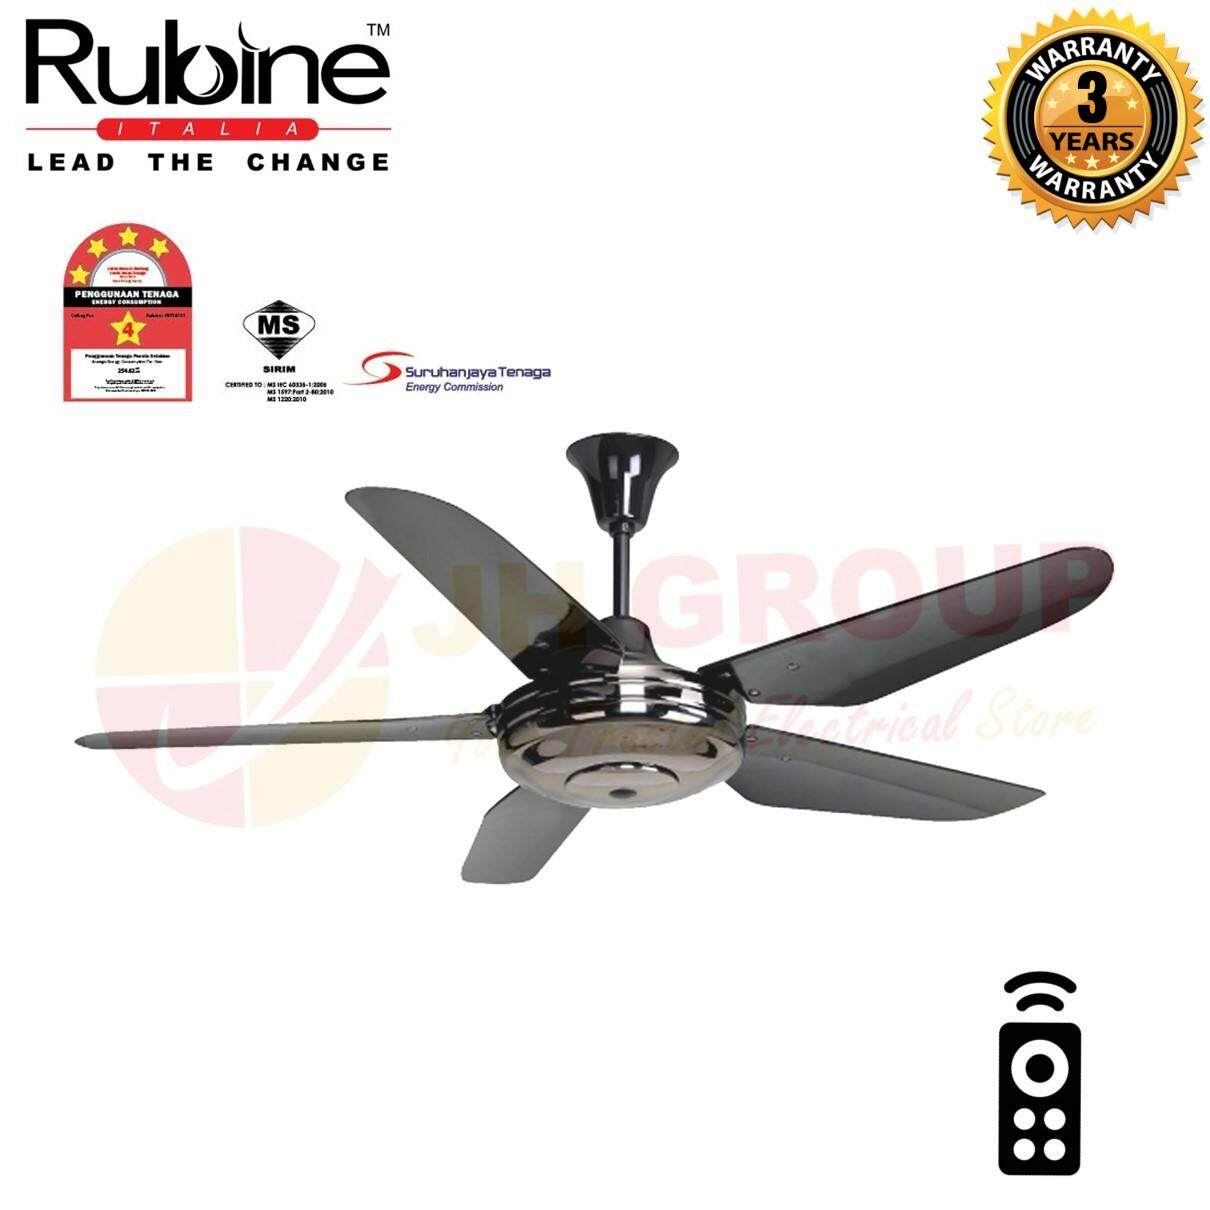 (AUTHORISED DEALER) RUBINE 46